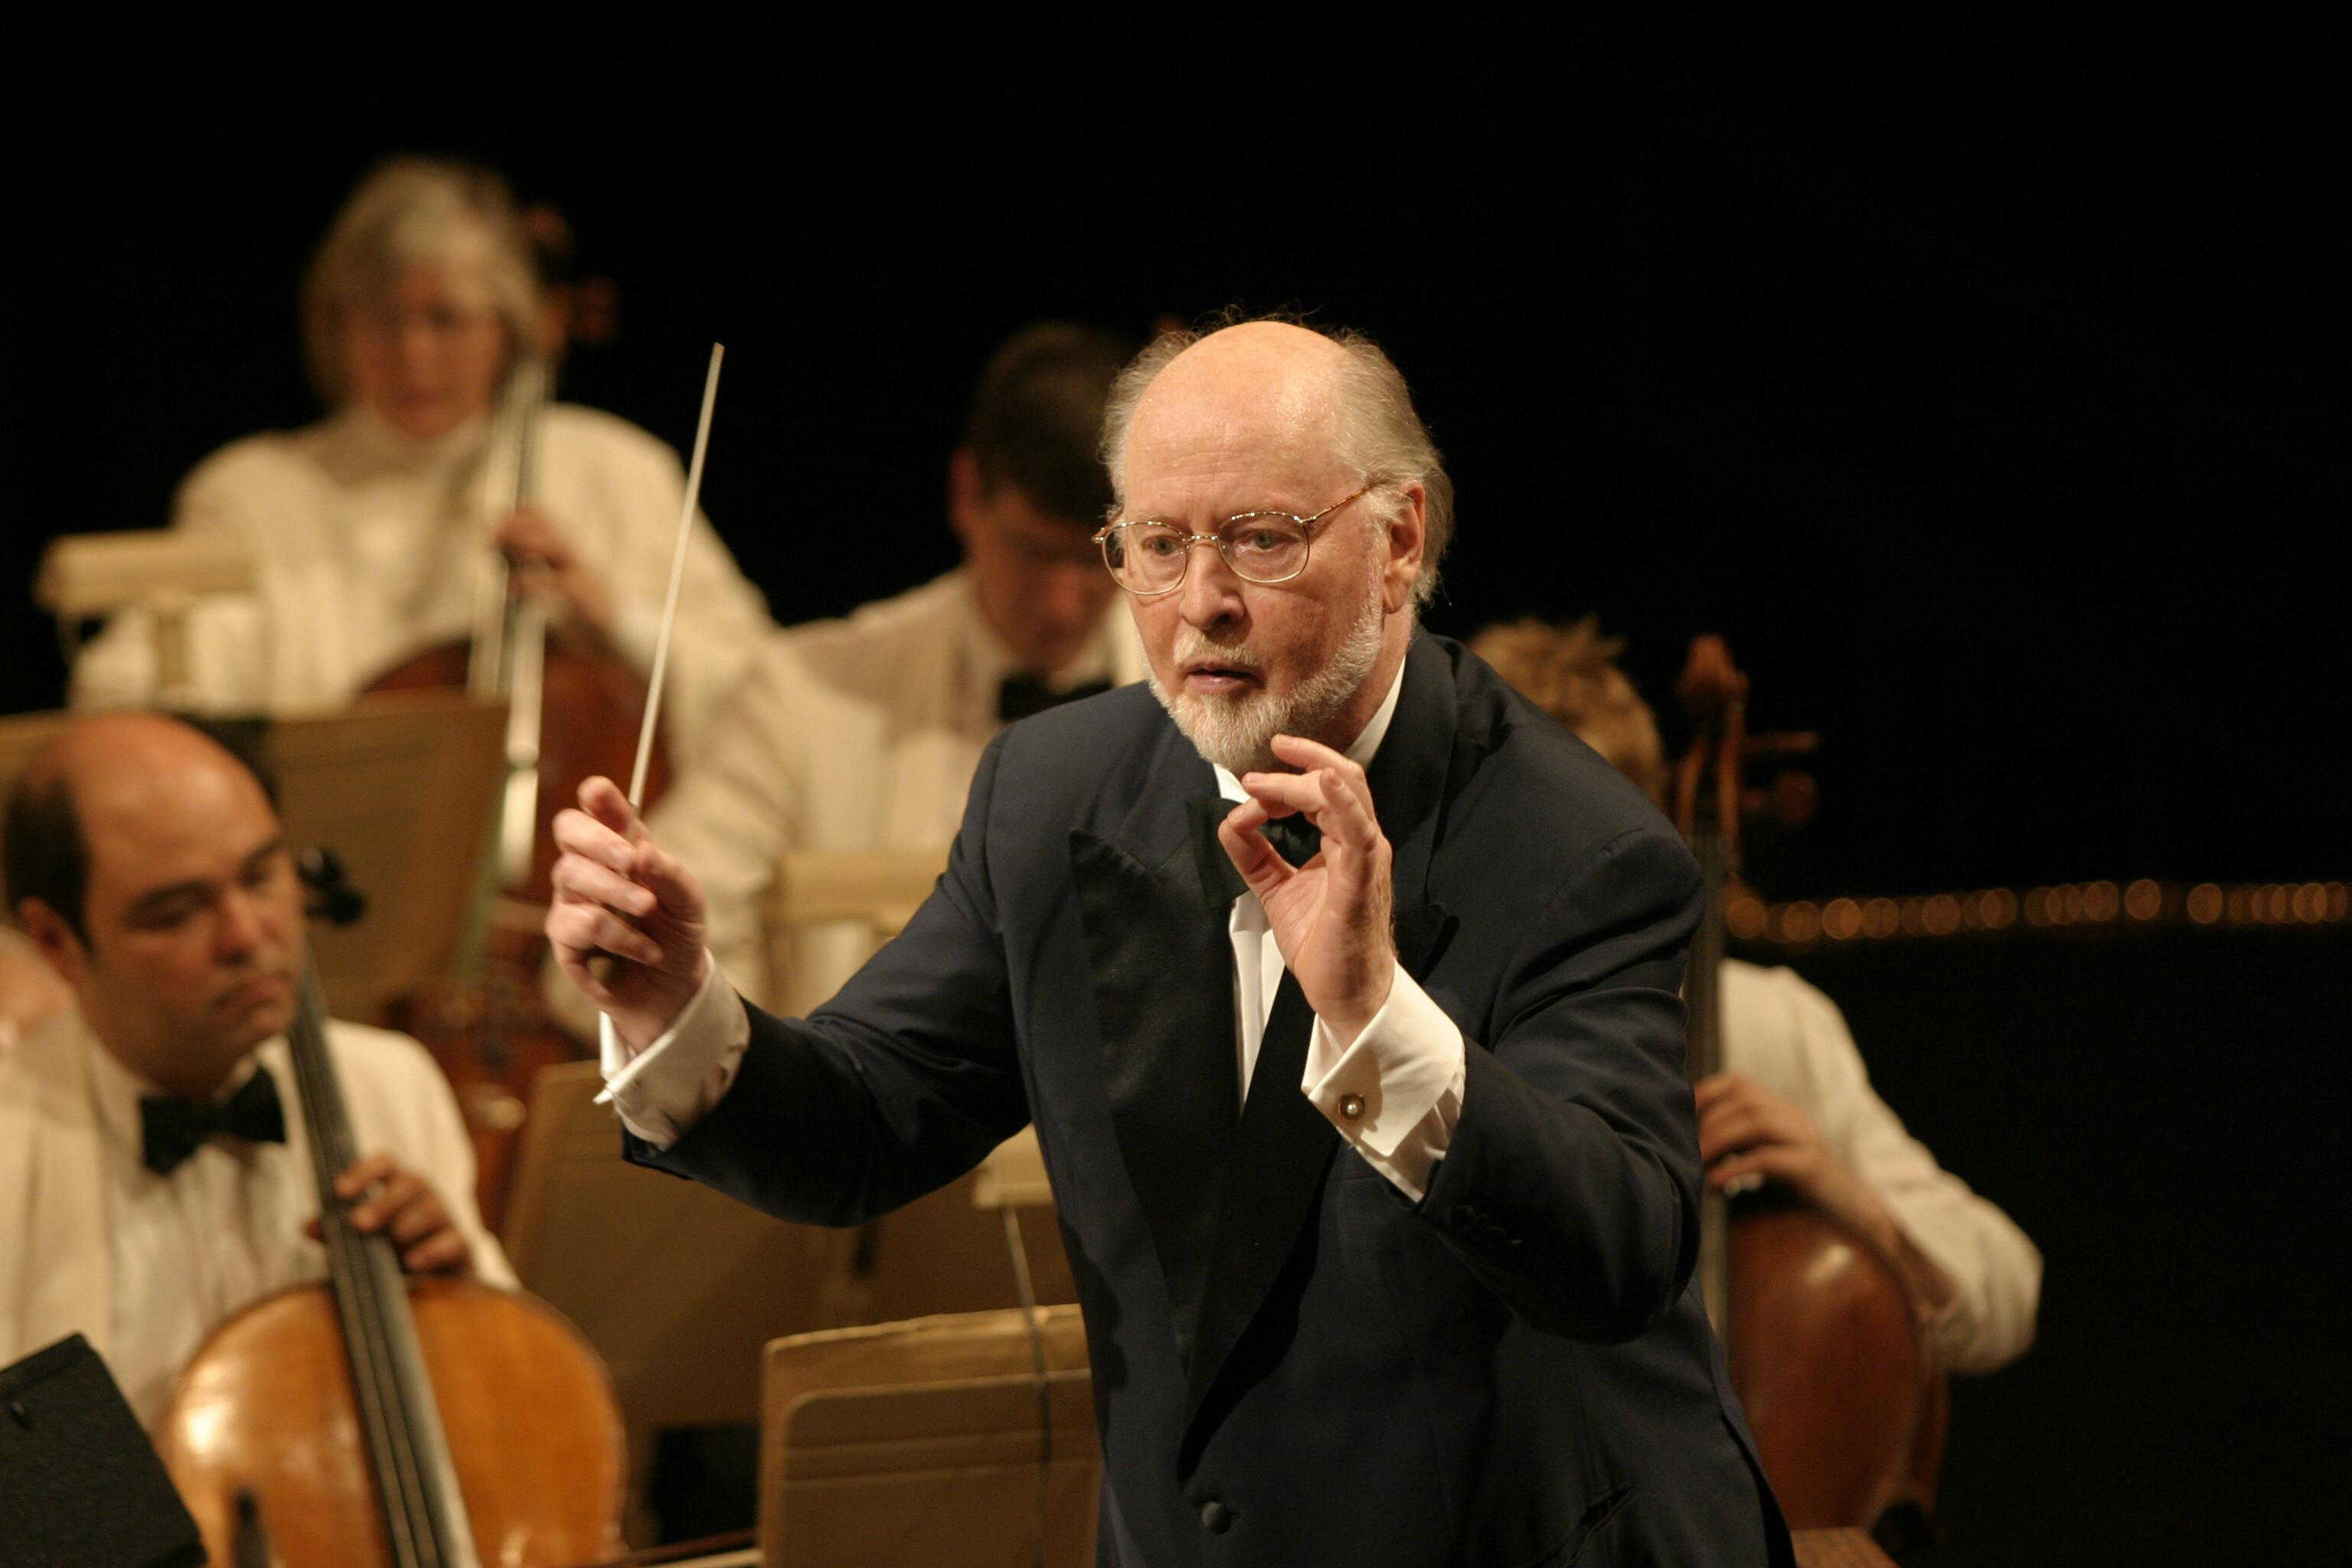 johnwilliams3